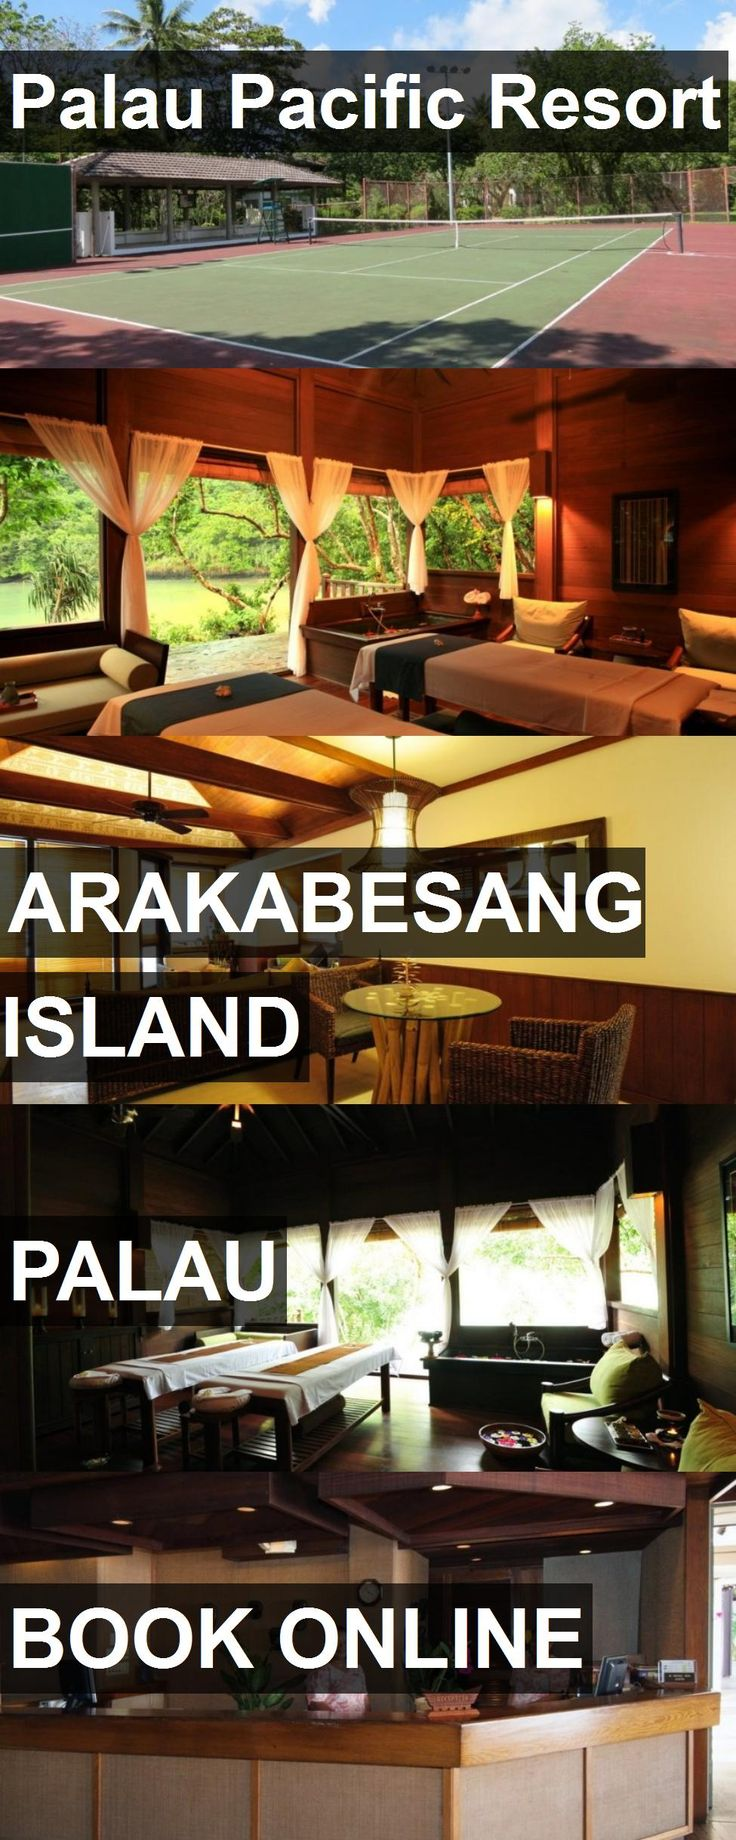 Hotel Palau Pacific Resort in Arakabesang Island, Palau. For more information, photos, reviews and best prices please follow the link. #Palau #ArakabesangIsland #travel #vacation #hotel